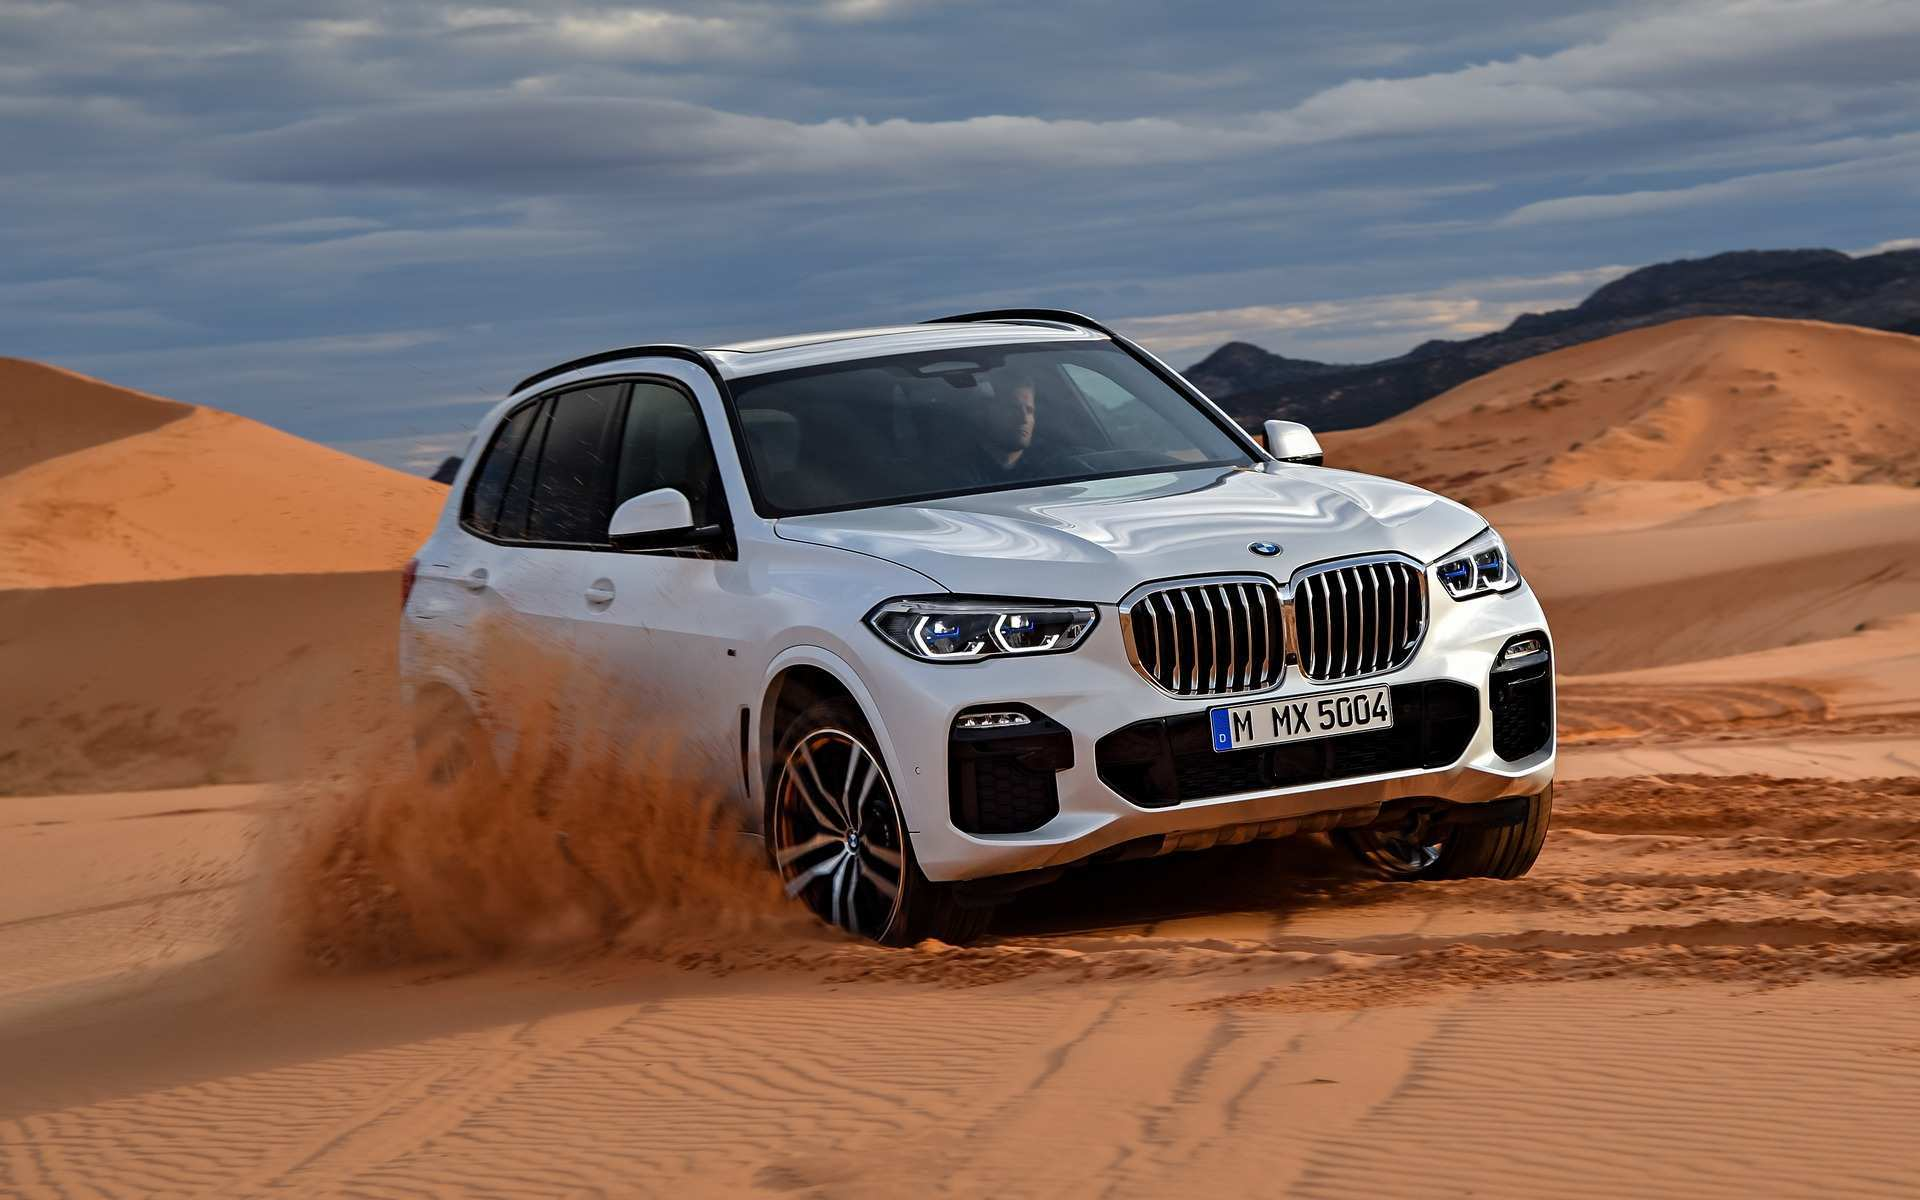 64 Great The 2019 Bmw X5 Configurator Usa Redesign And Concept First Drive with The 2019 Bmw X5 Configurator Usa Redesign And Concept